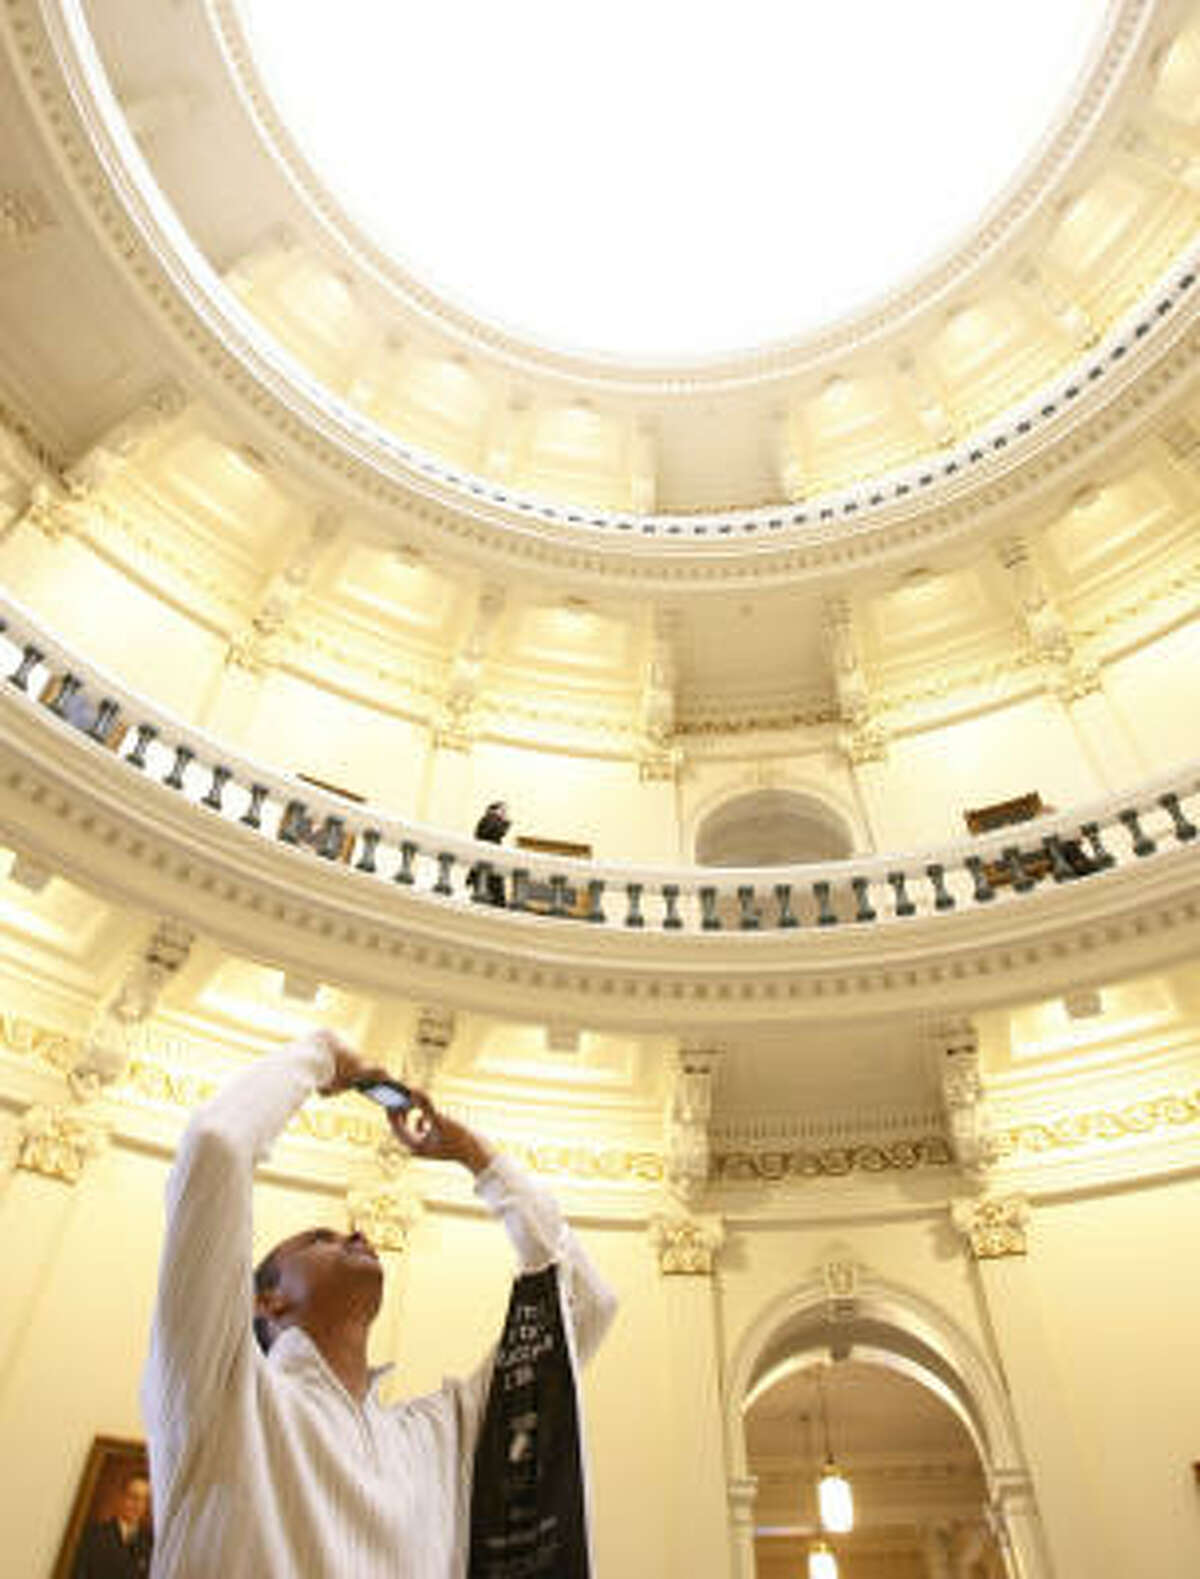 Quincy Thomas, 17, a senior at McArthur High School in Houston, takes a photo of the Texas State Capitol building Tuesday in Austin. Thomas came to see former McArthur student, Armando Walle, be sworn in to the Texas House of Representatives.